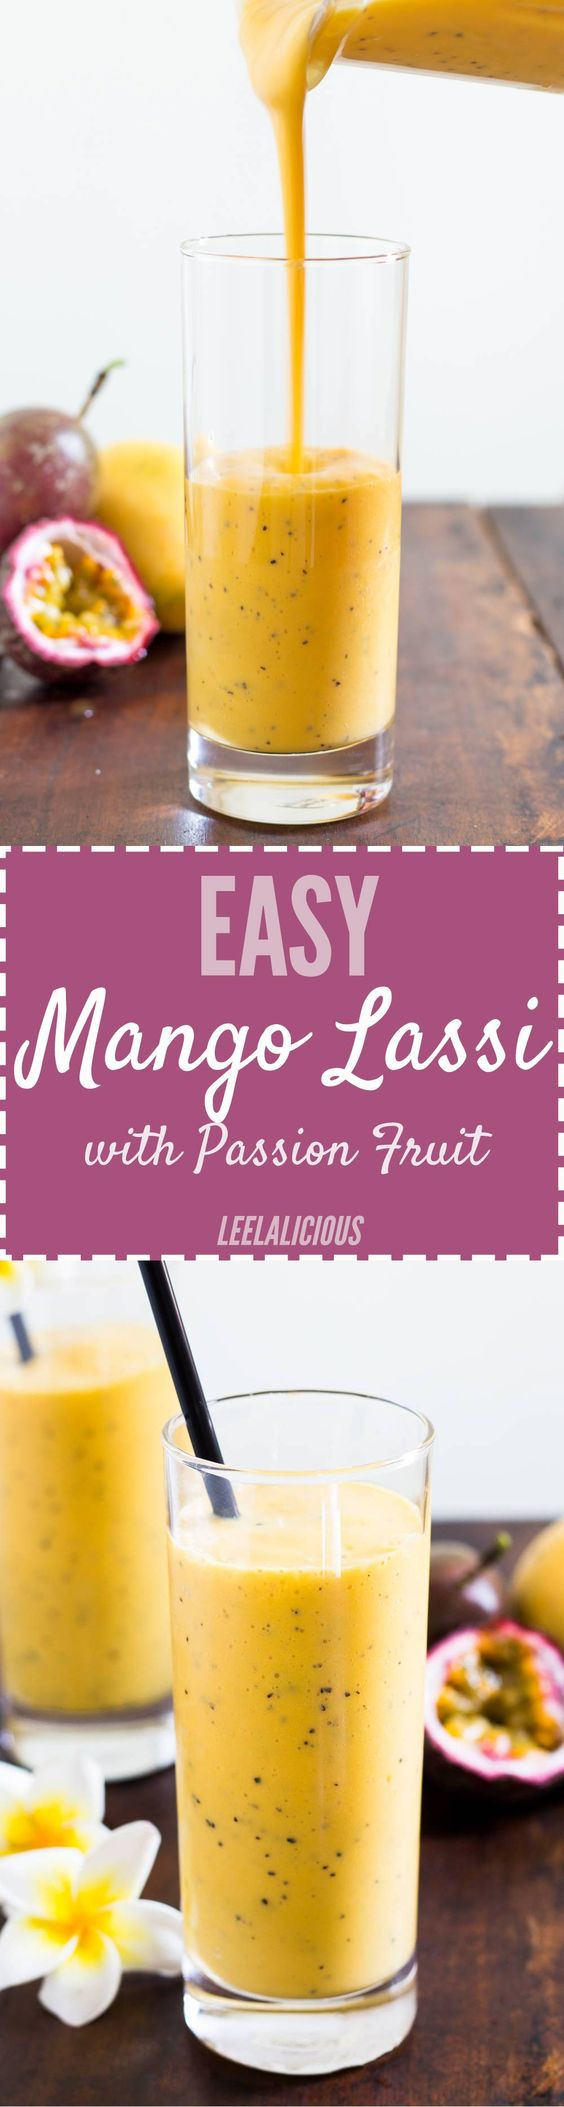 This Easy Mango Lassi Recipe with the addition of passion fruit juice ...